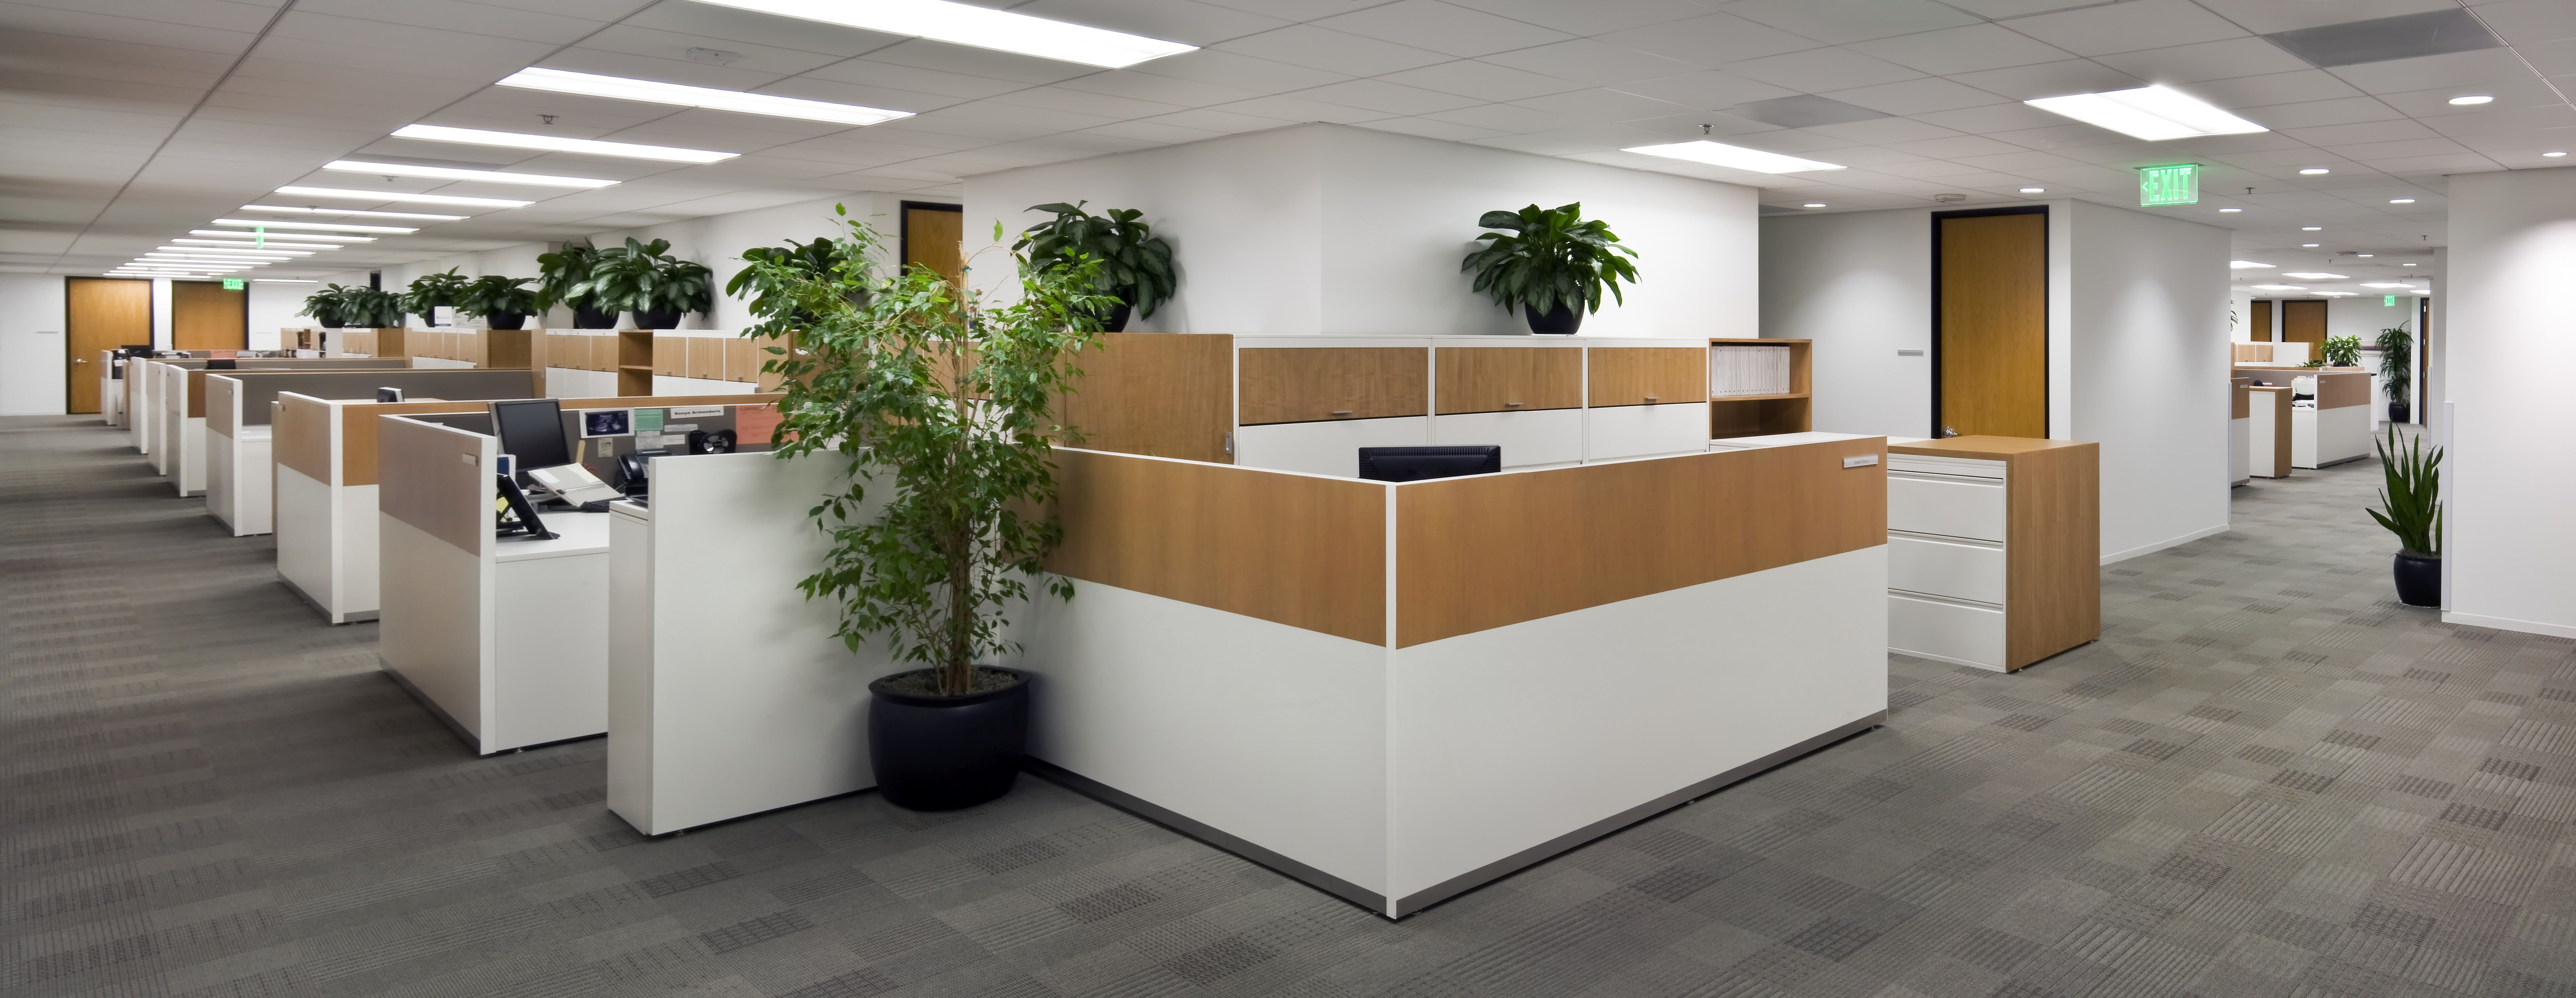 Panoramic view of a legal office Modern designed workstations